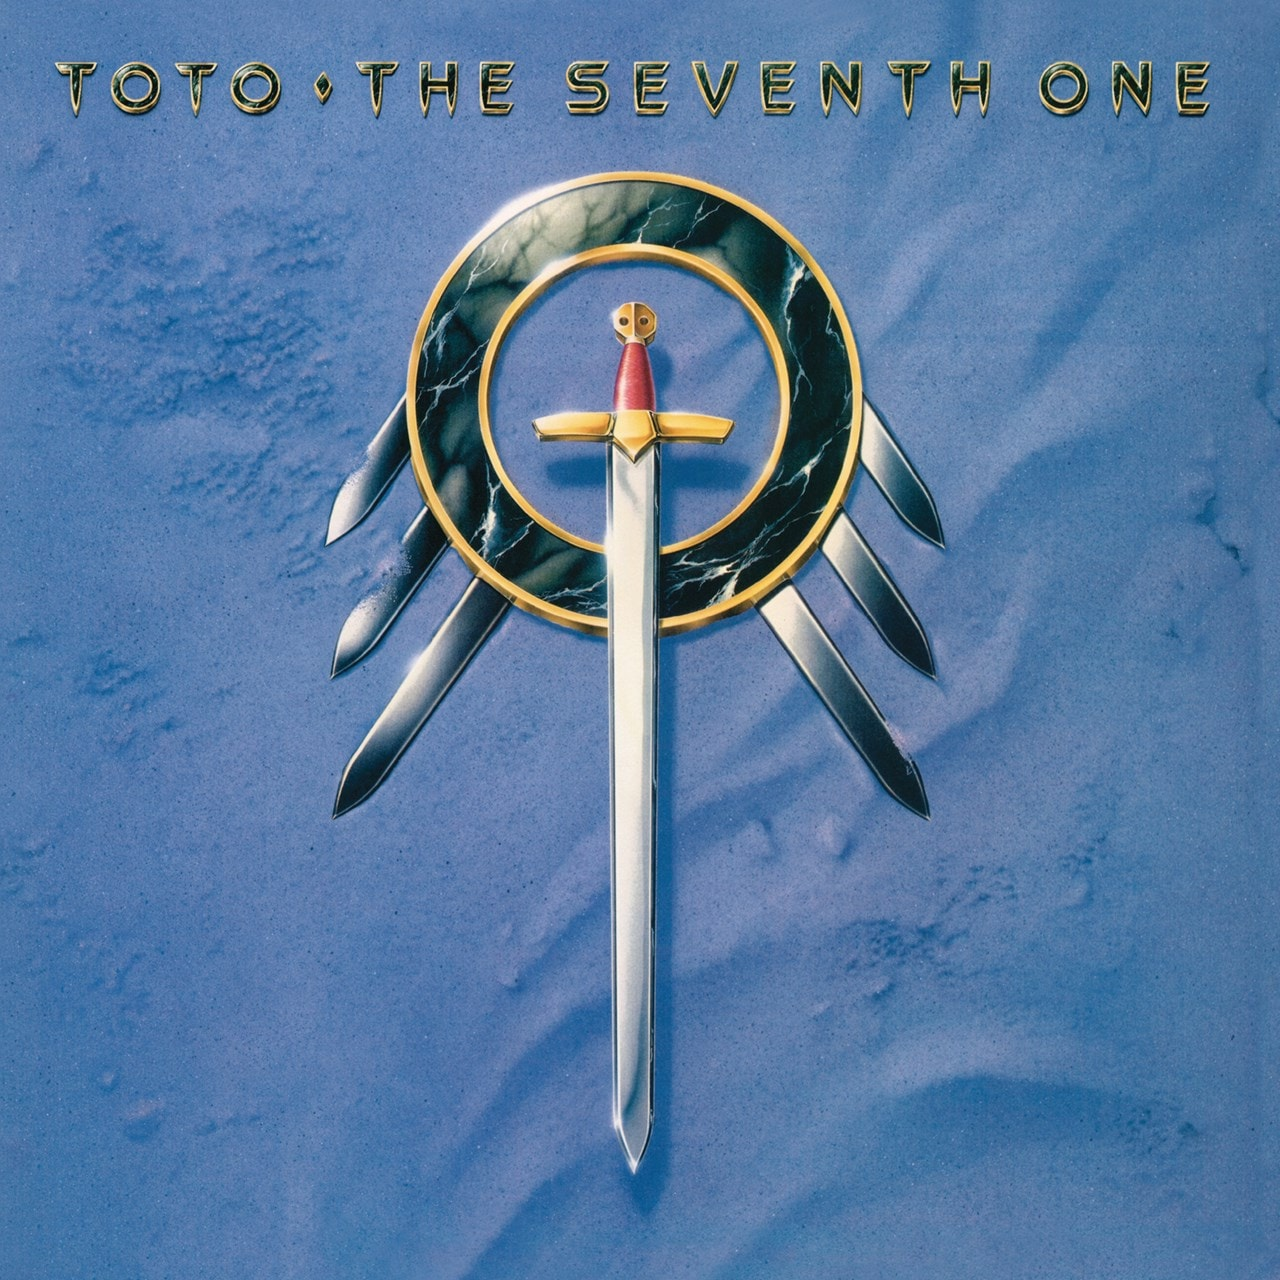 The Seventh One - 1